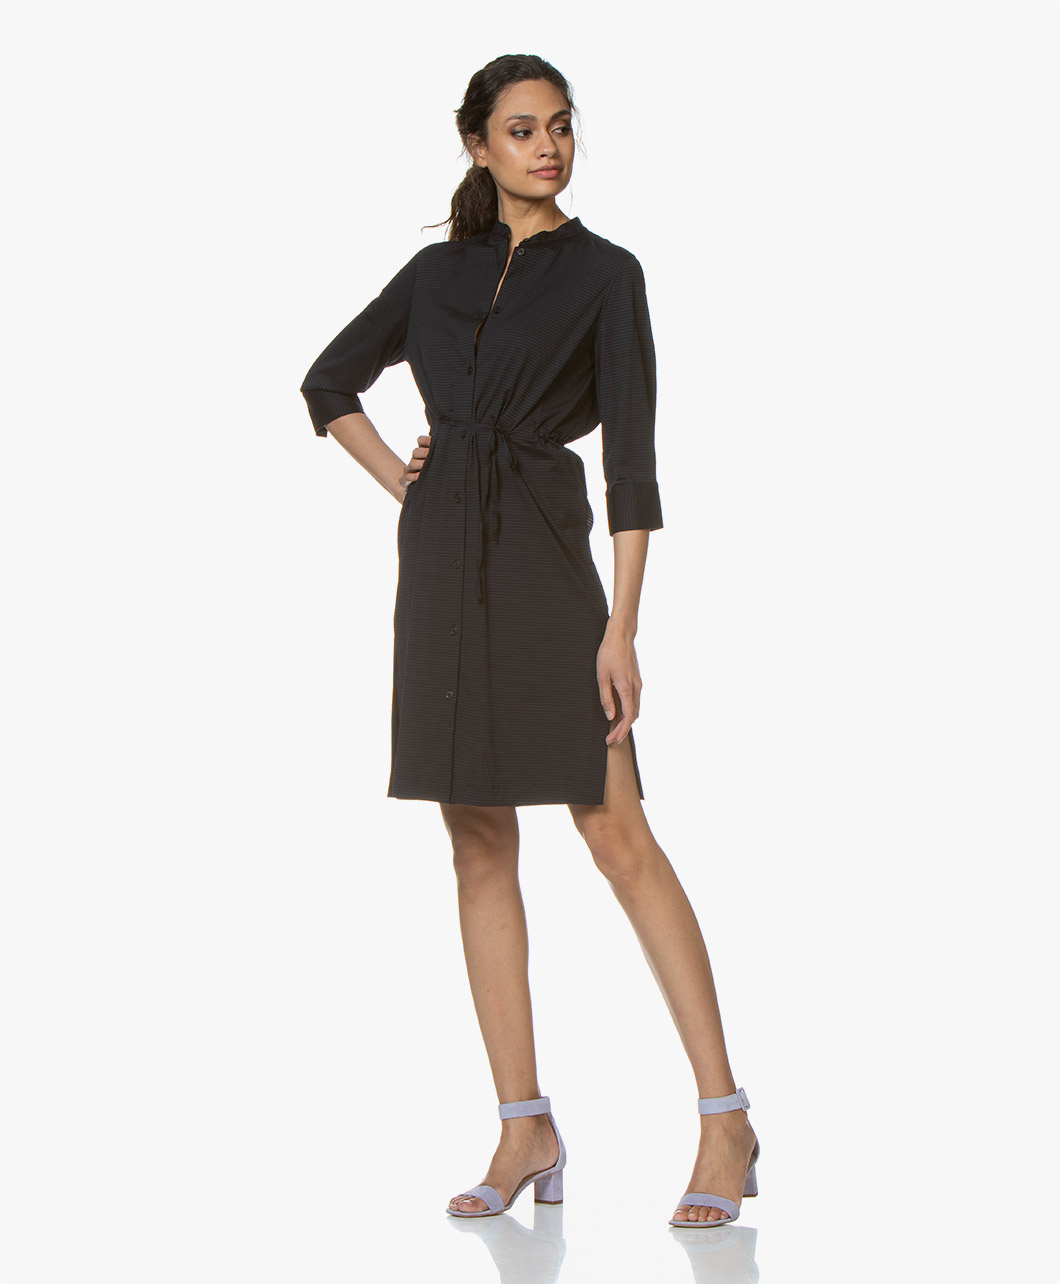 a4825ab9a Filippa K Seer-sucker Shirt Dress - Navy - 26064 2830 - navy